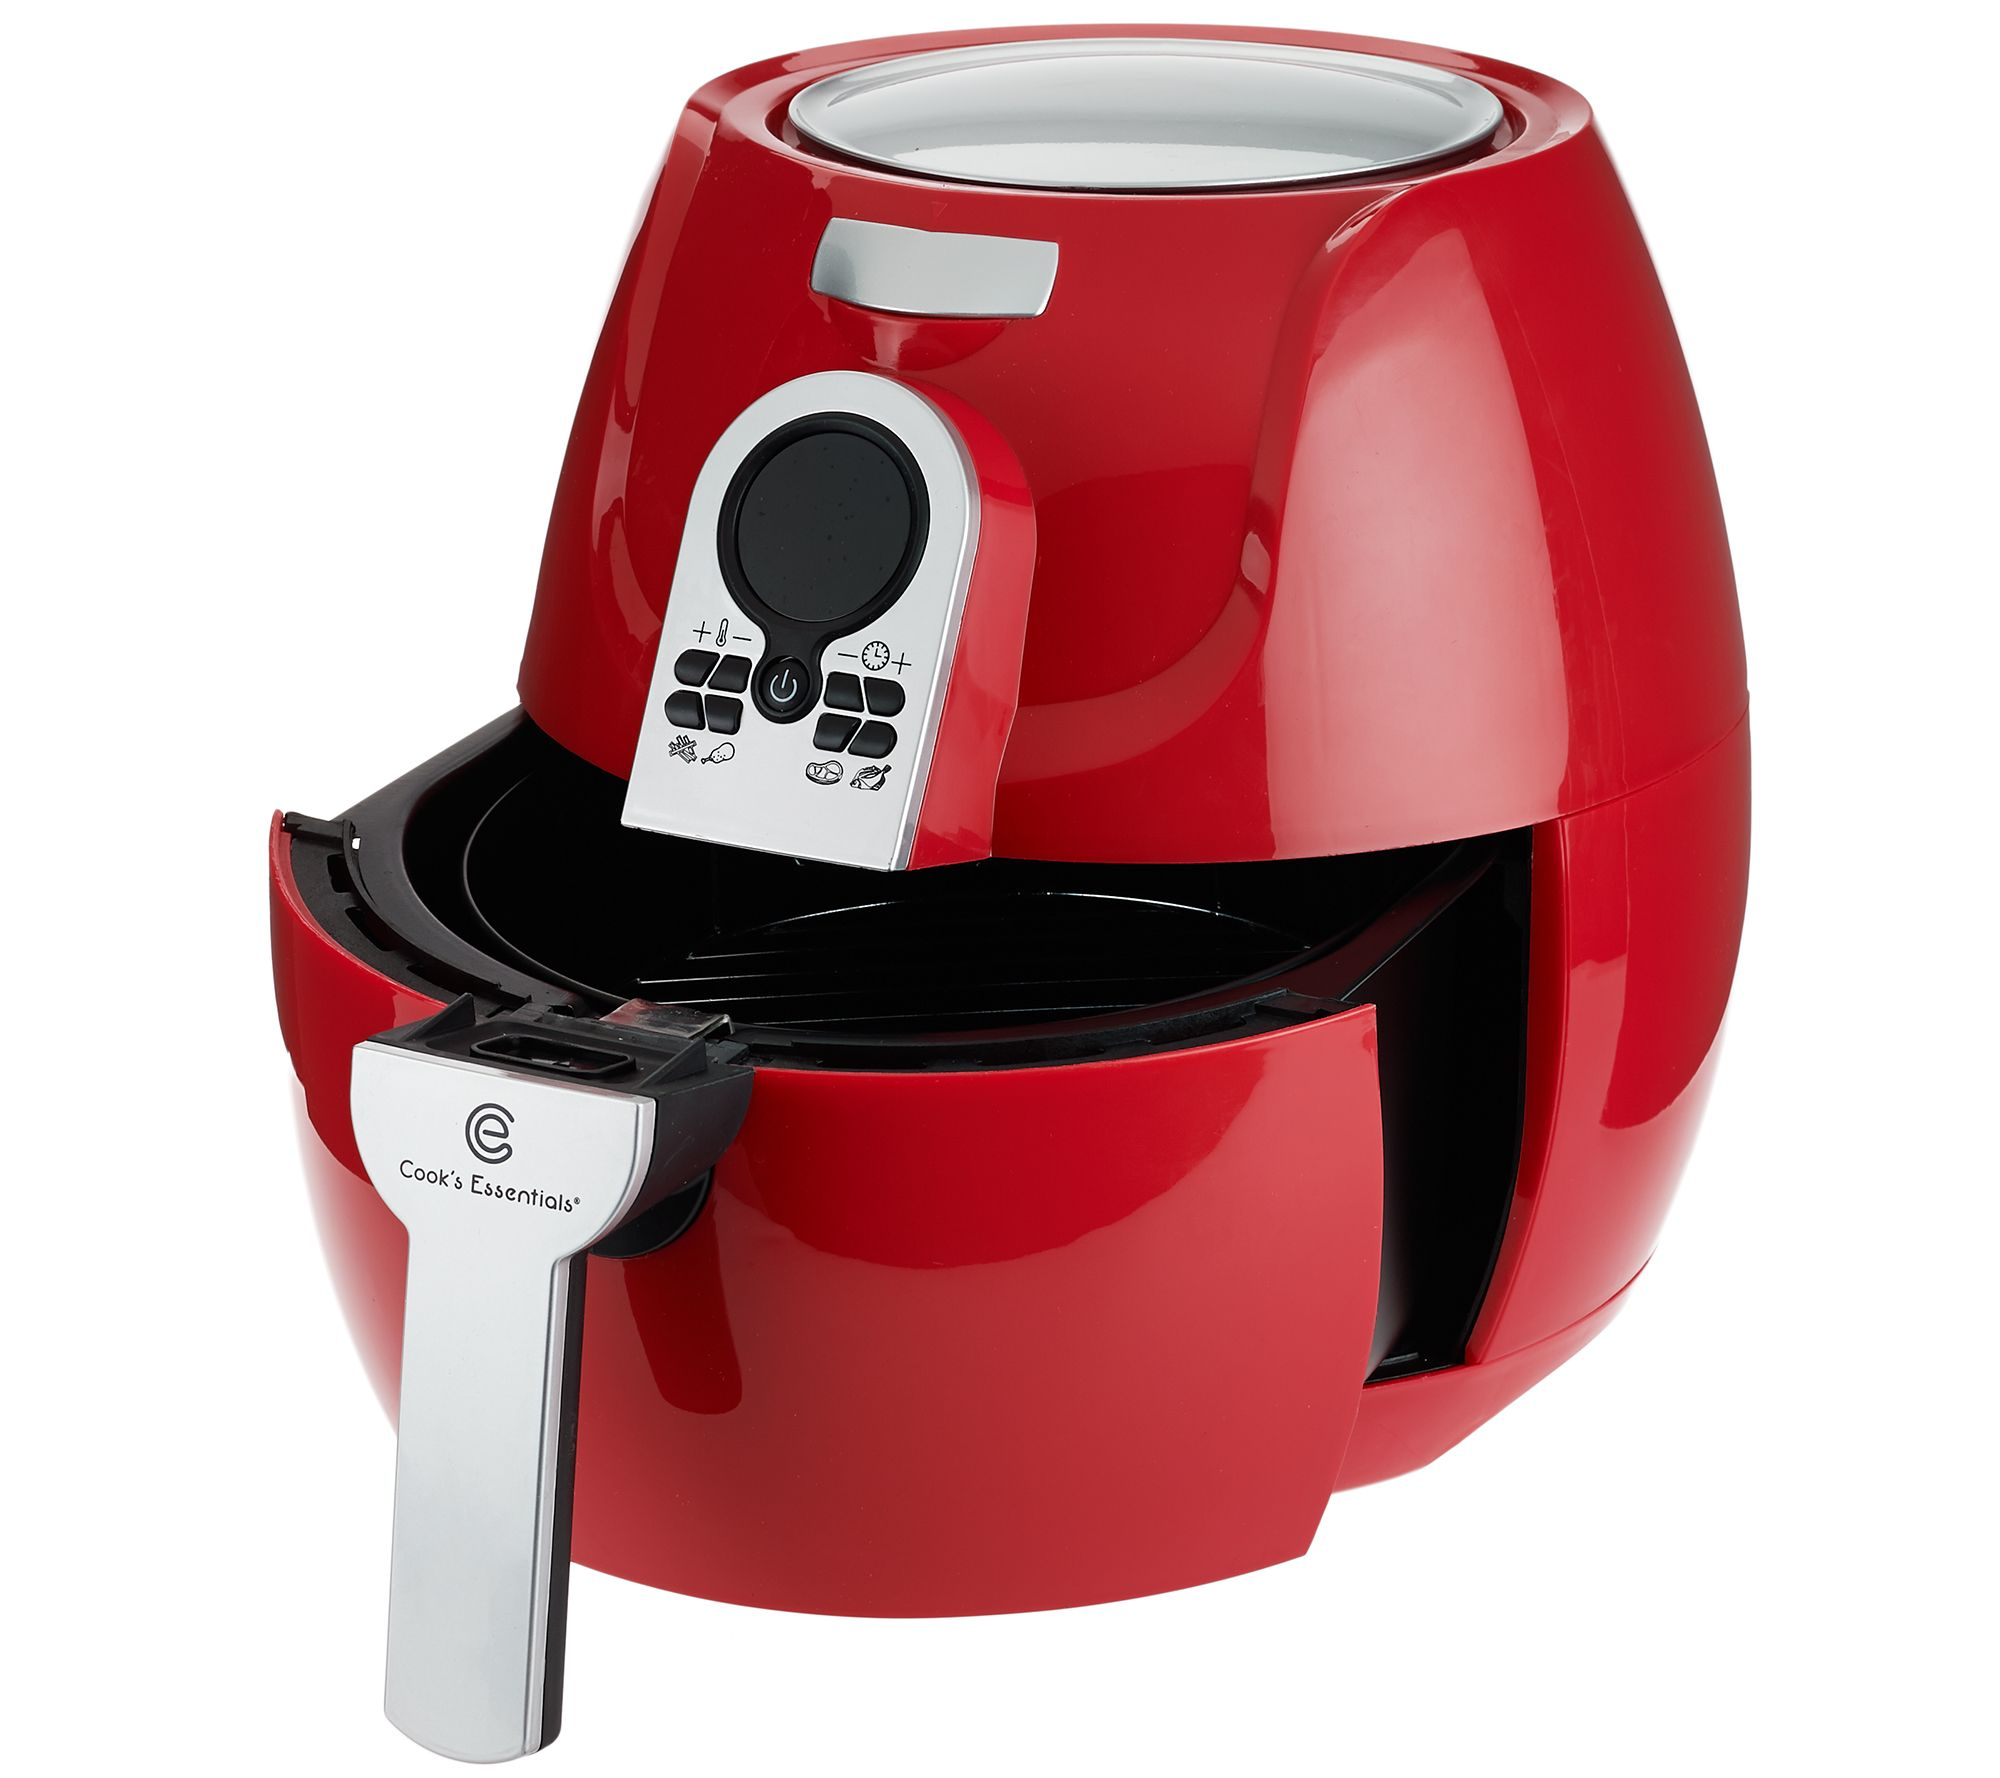 cooksessentials 1500w digital air fryer with presets grill rack